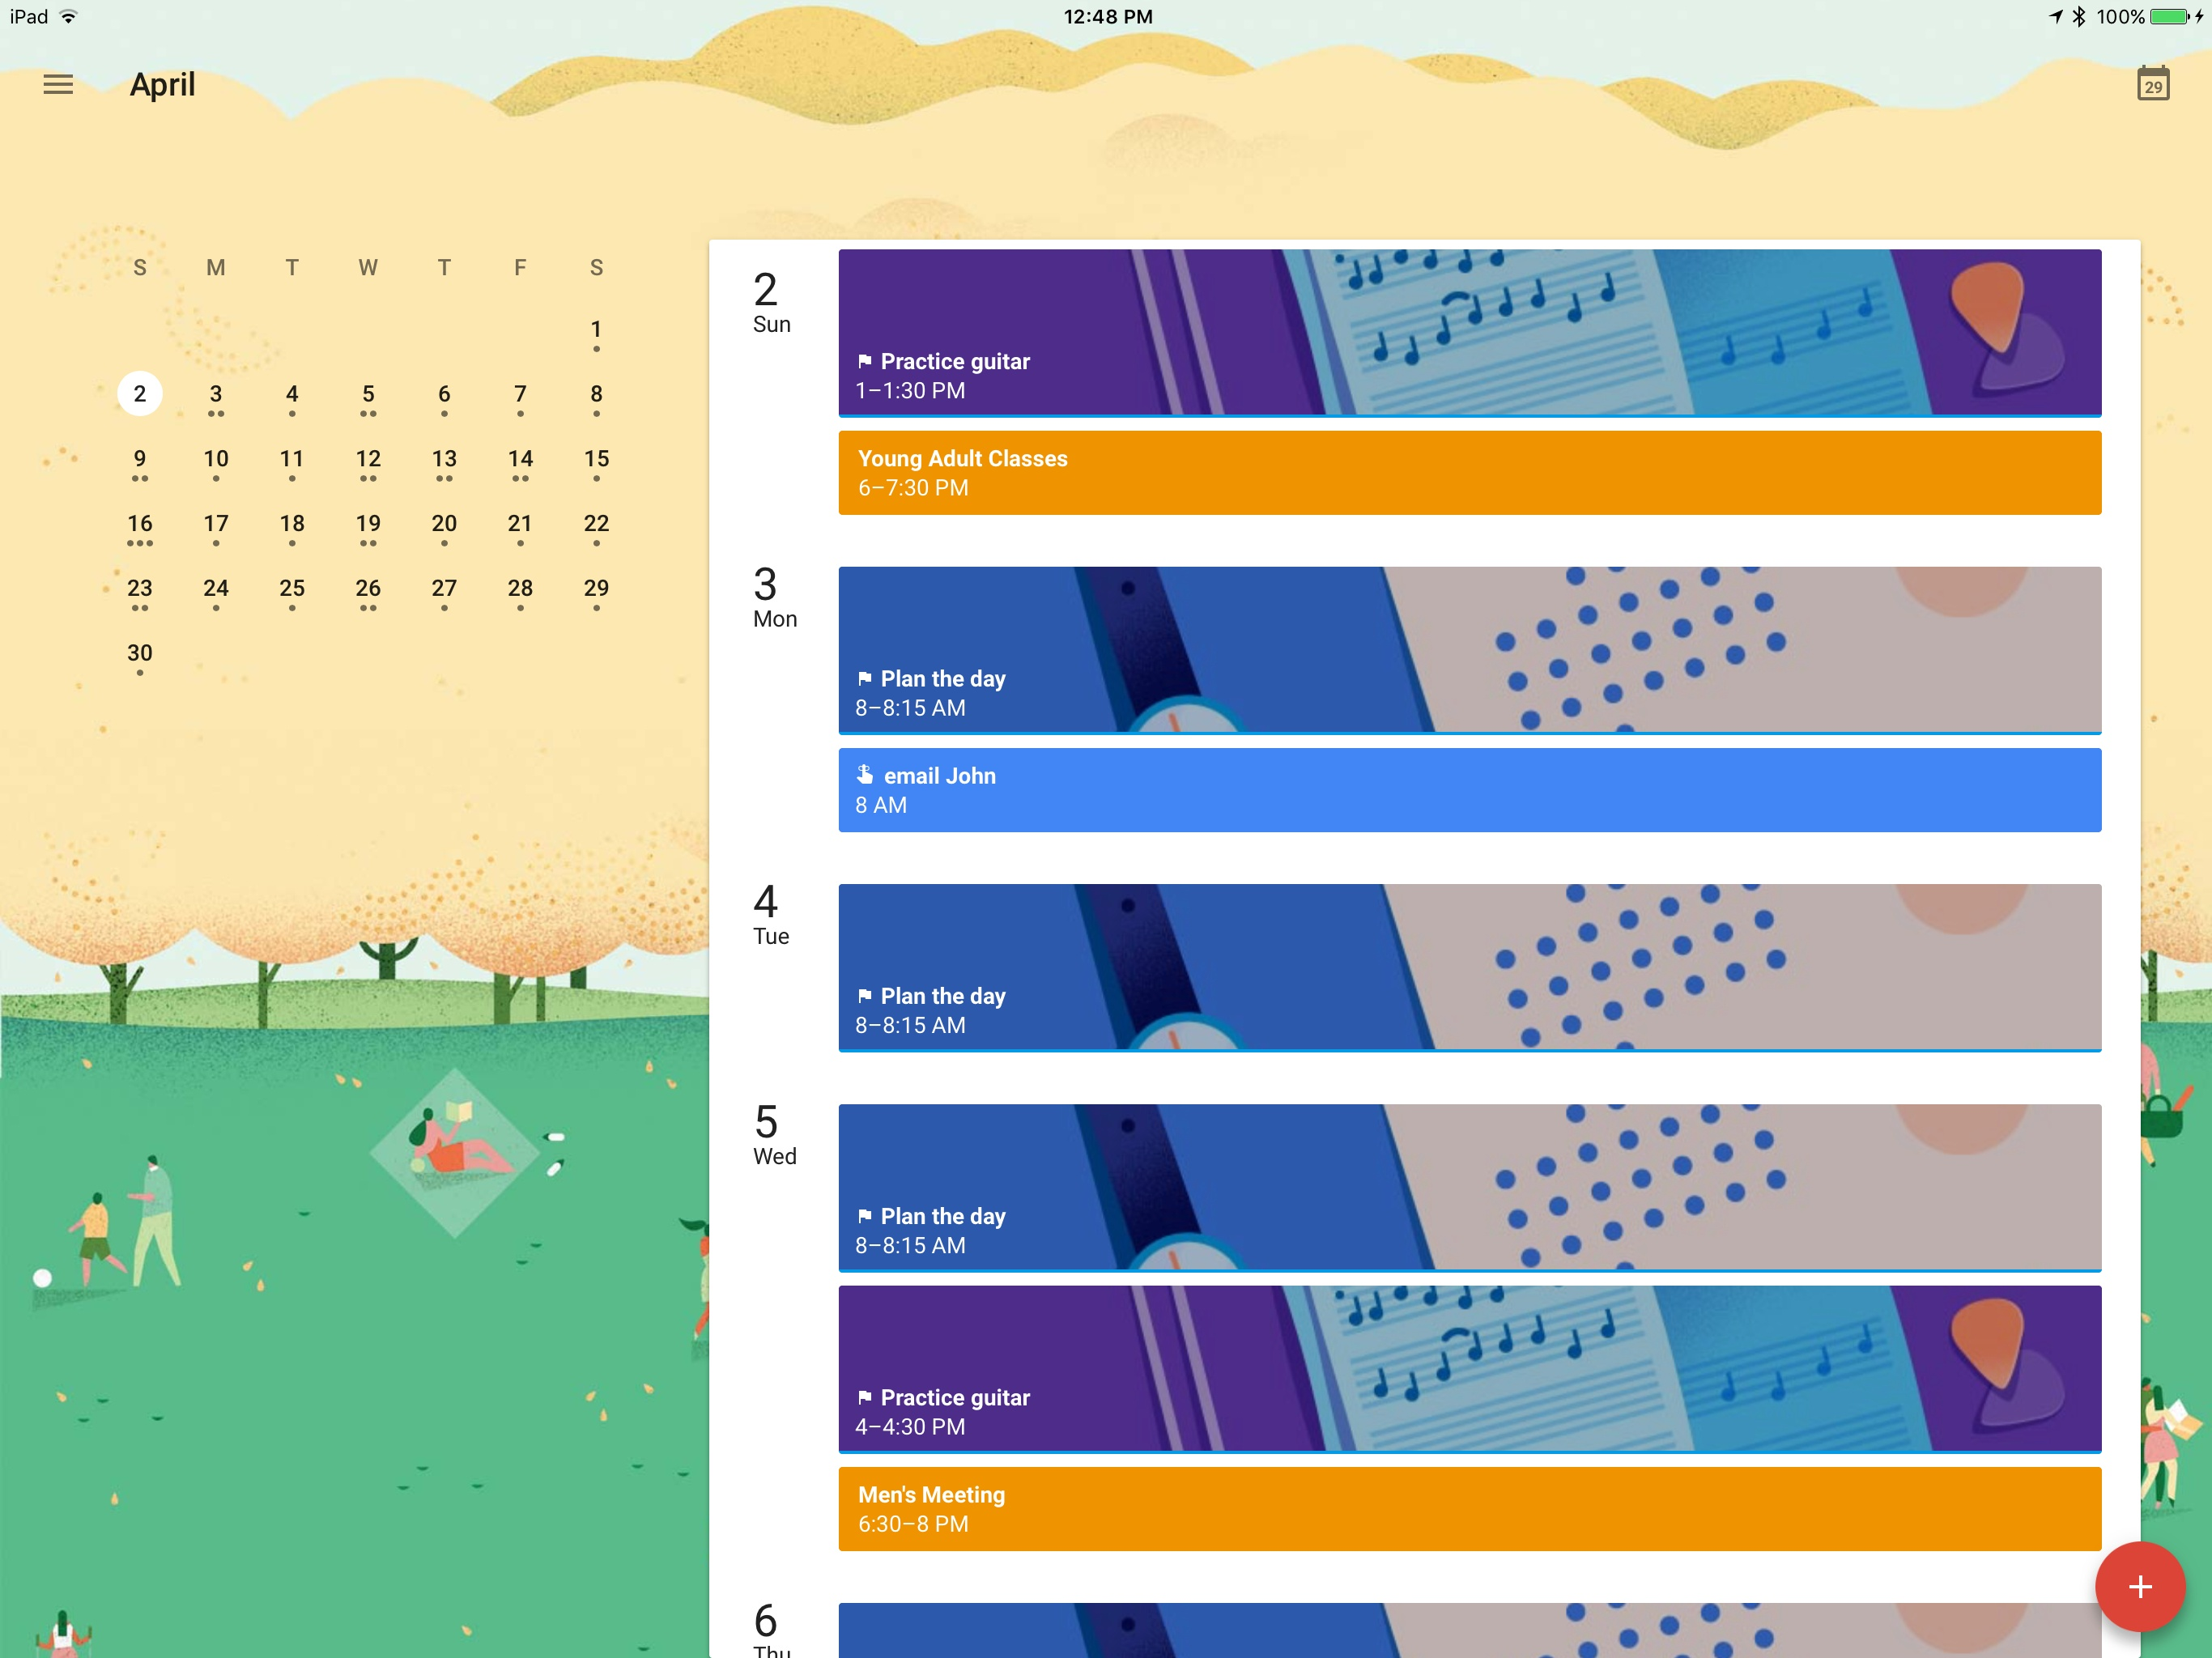 Calendar Wallpaper Automatic Update : Google calendar arrives on ipad macstories